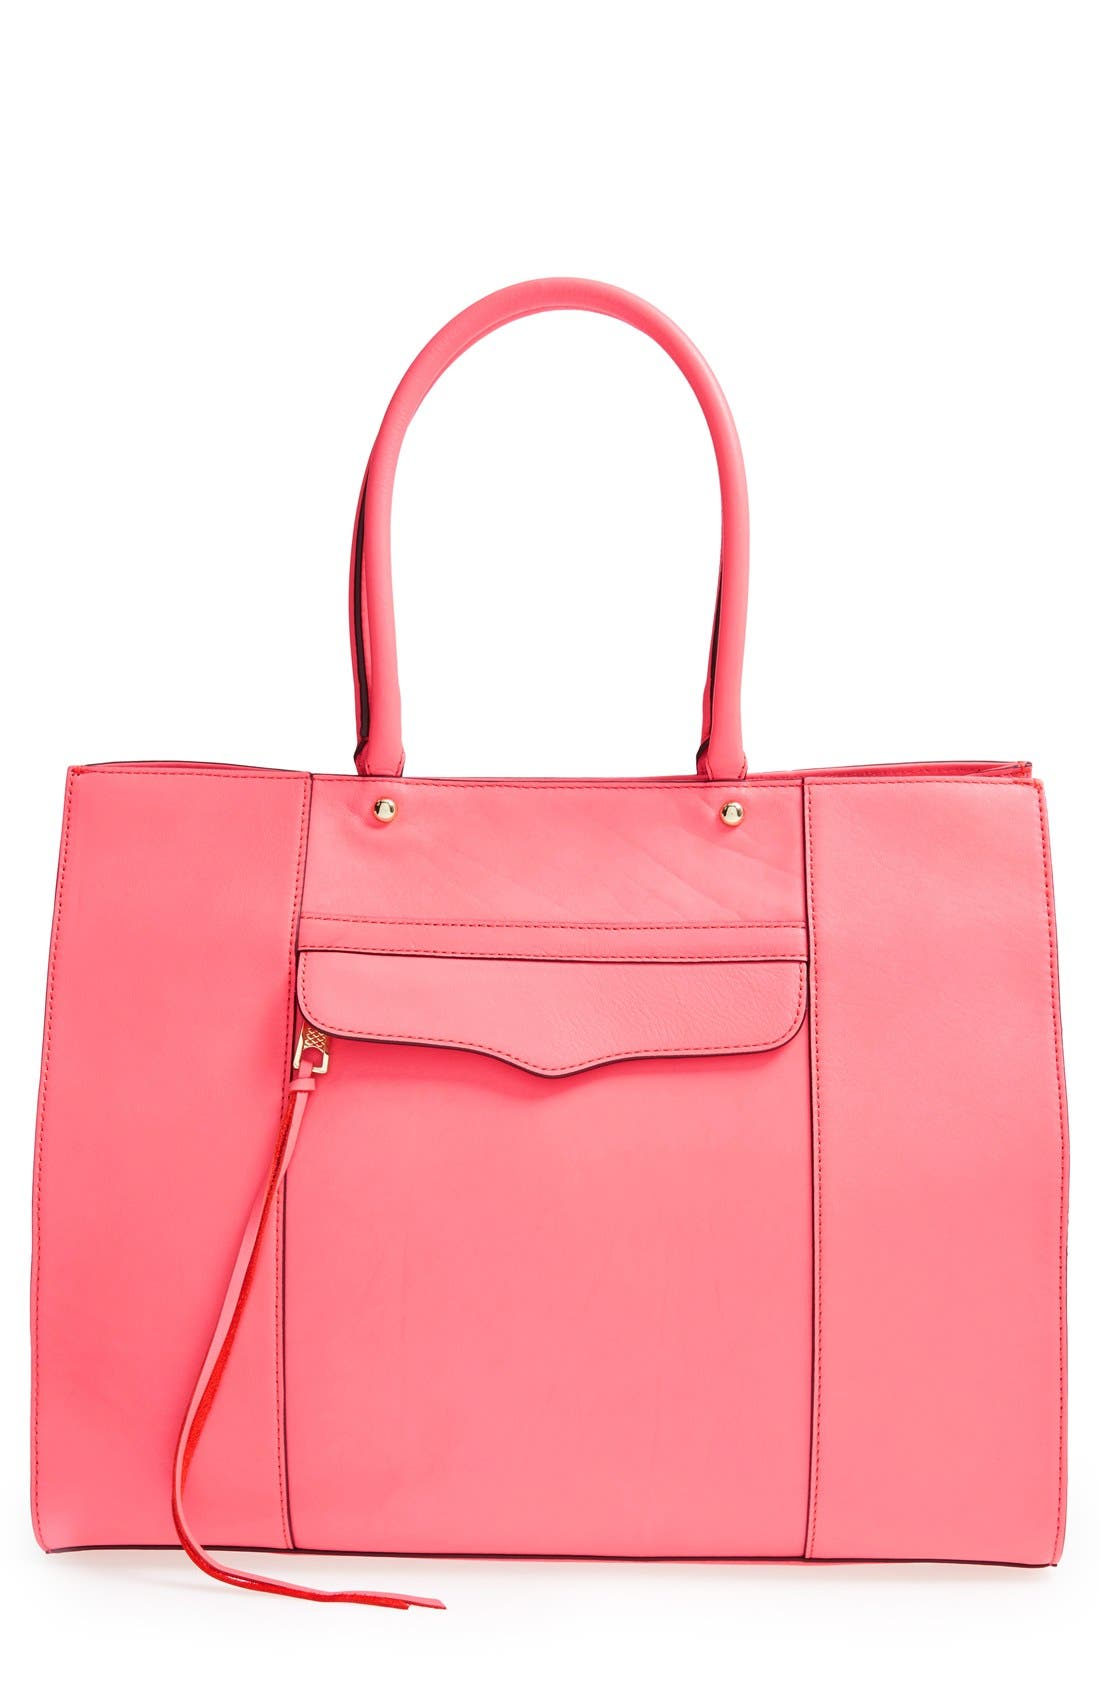 Alternate Image 1 Selected - Rebecca Minkoff 'MAB' Tote